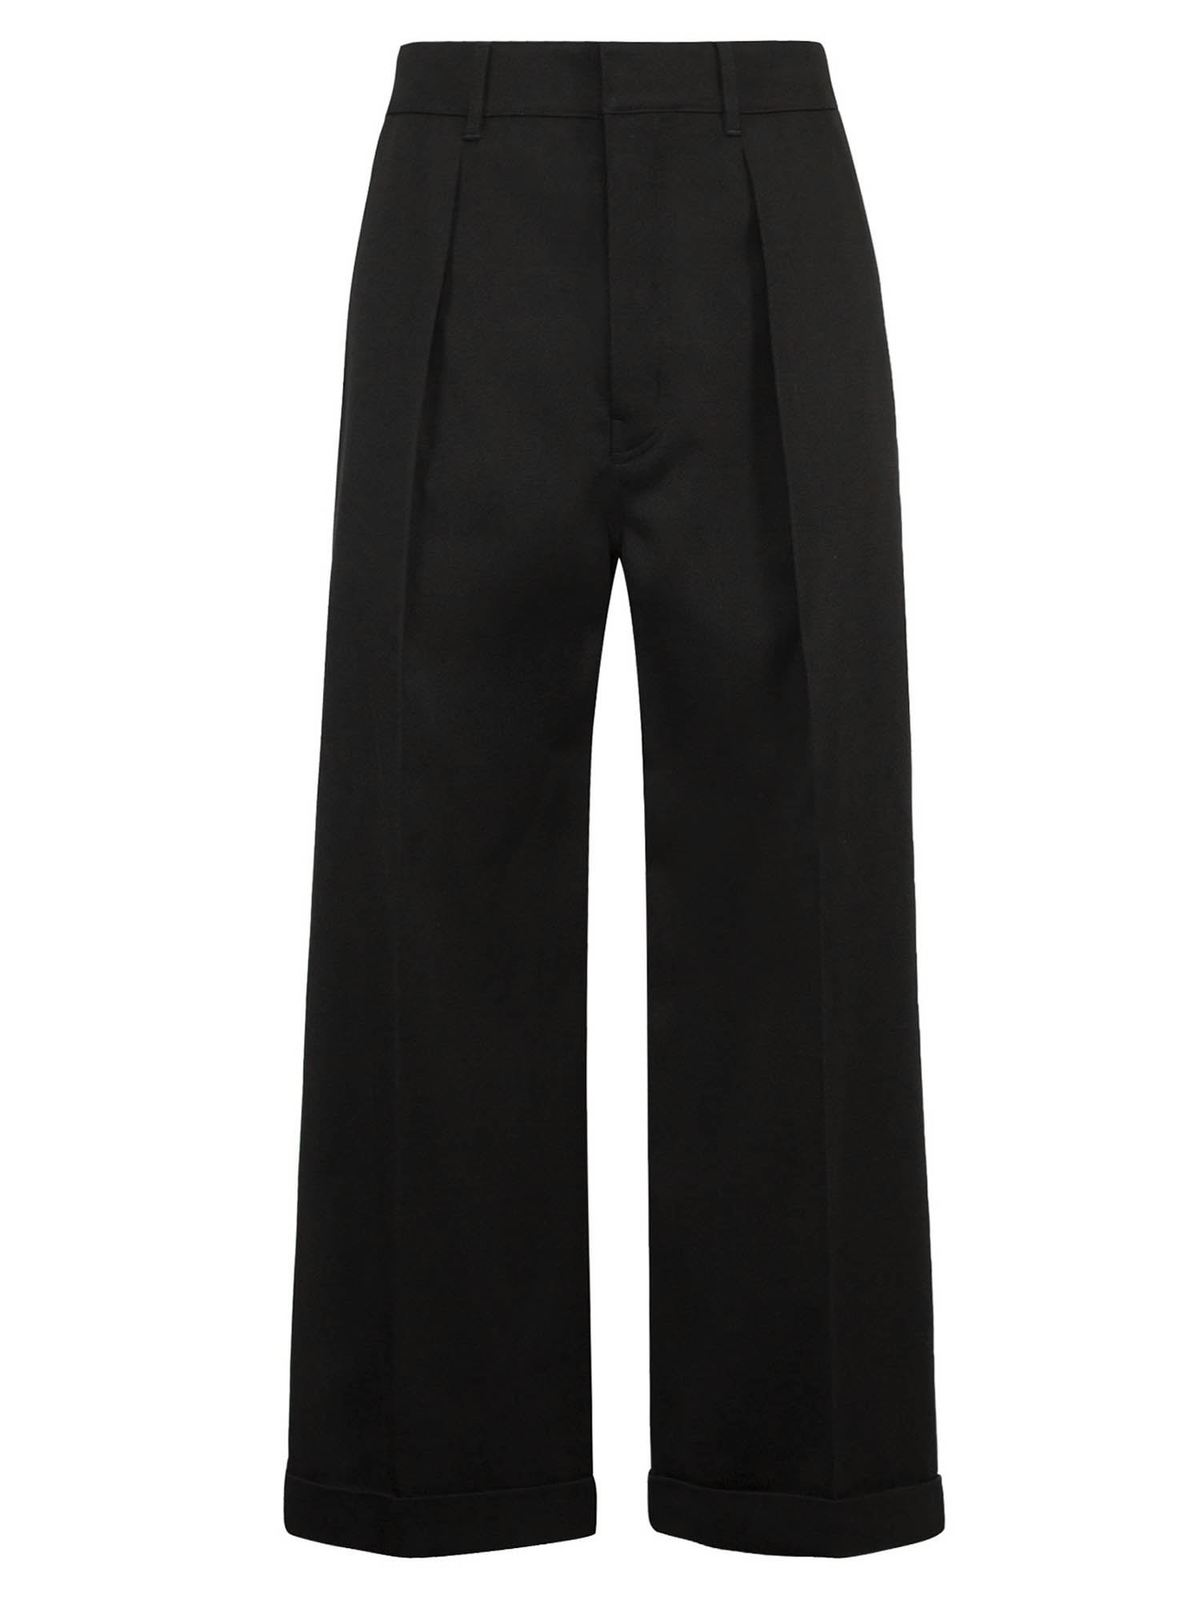 LOEWE CROPPED PANTS IN BLACK